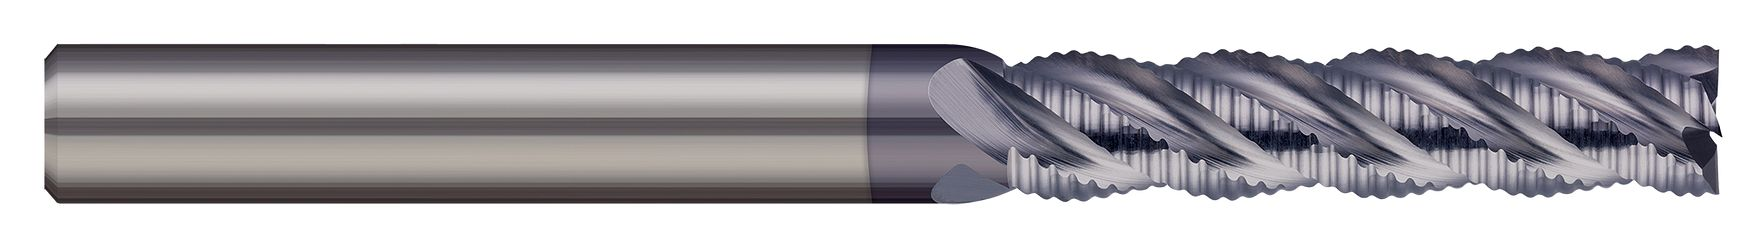 End Mills for Steels & High Temperature Alloys - Square - 4 Flute - Chipbreaker Rougher